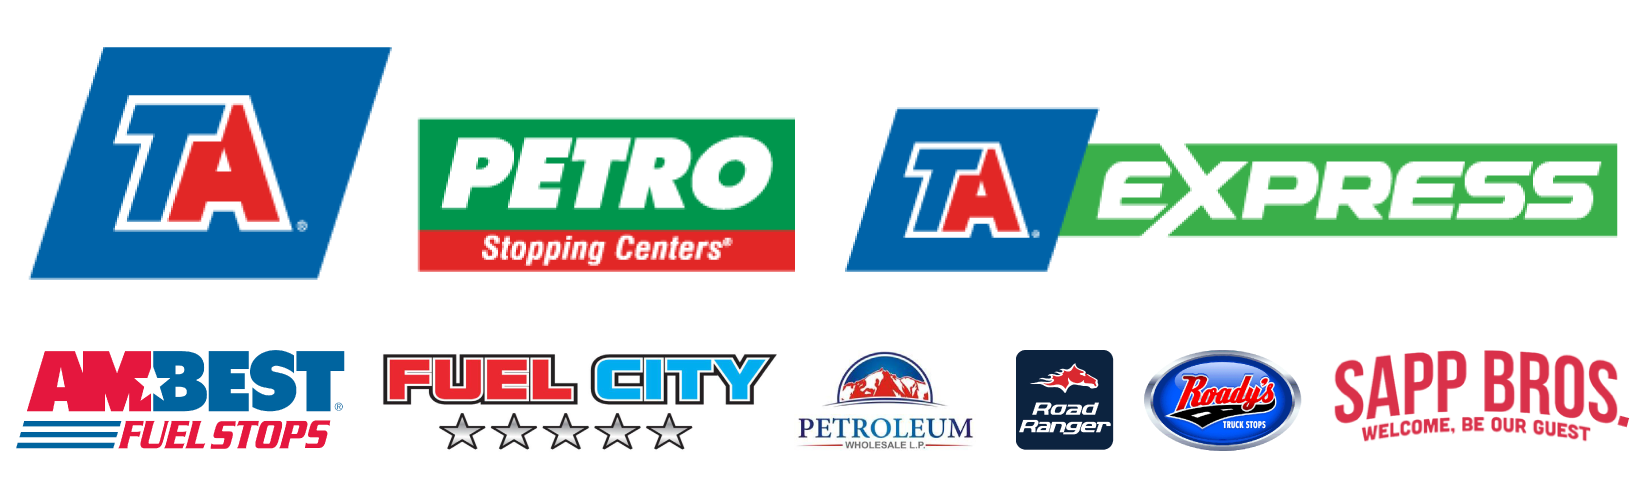 TCS fuel partners offer fuel discounts for truckers